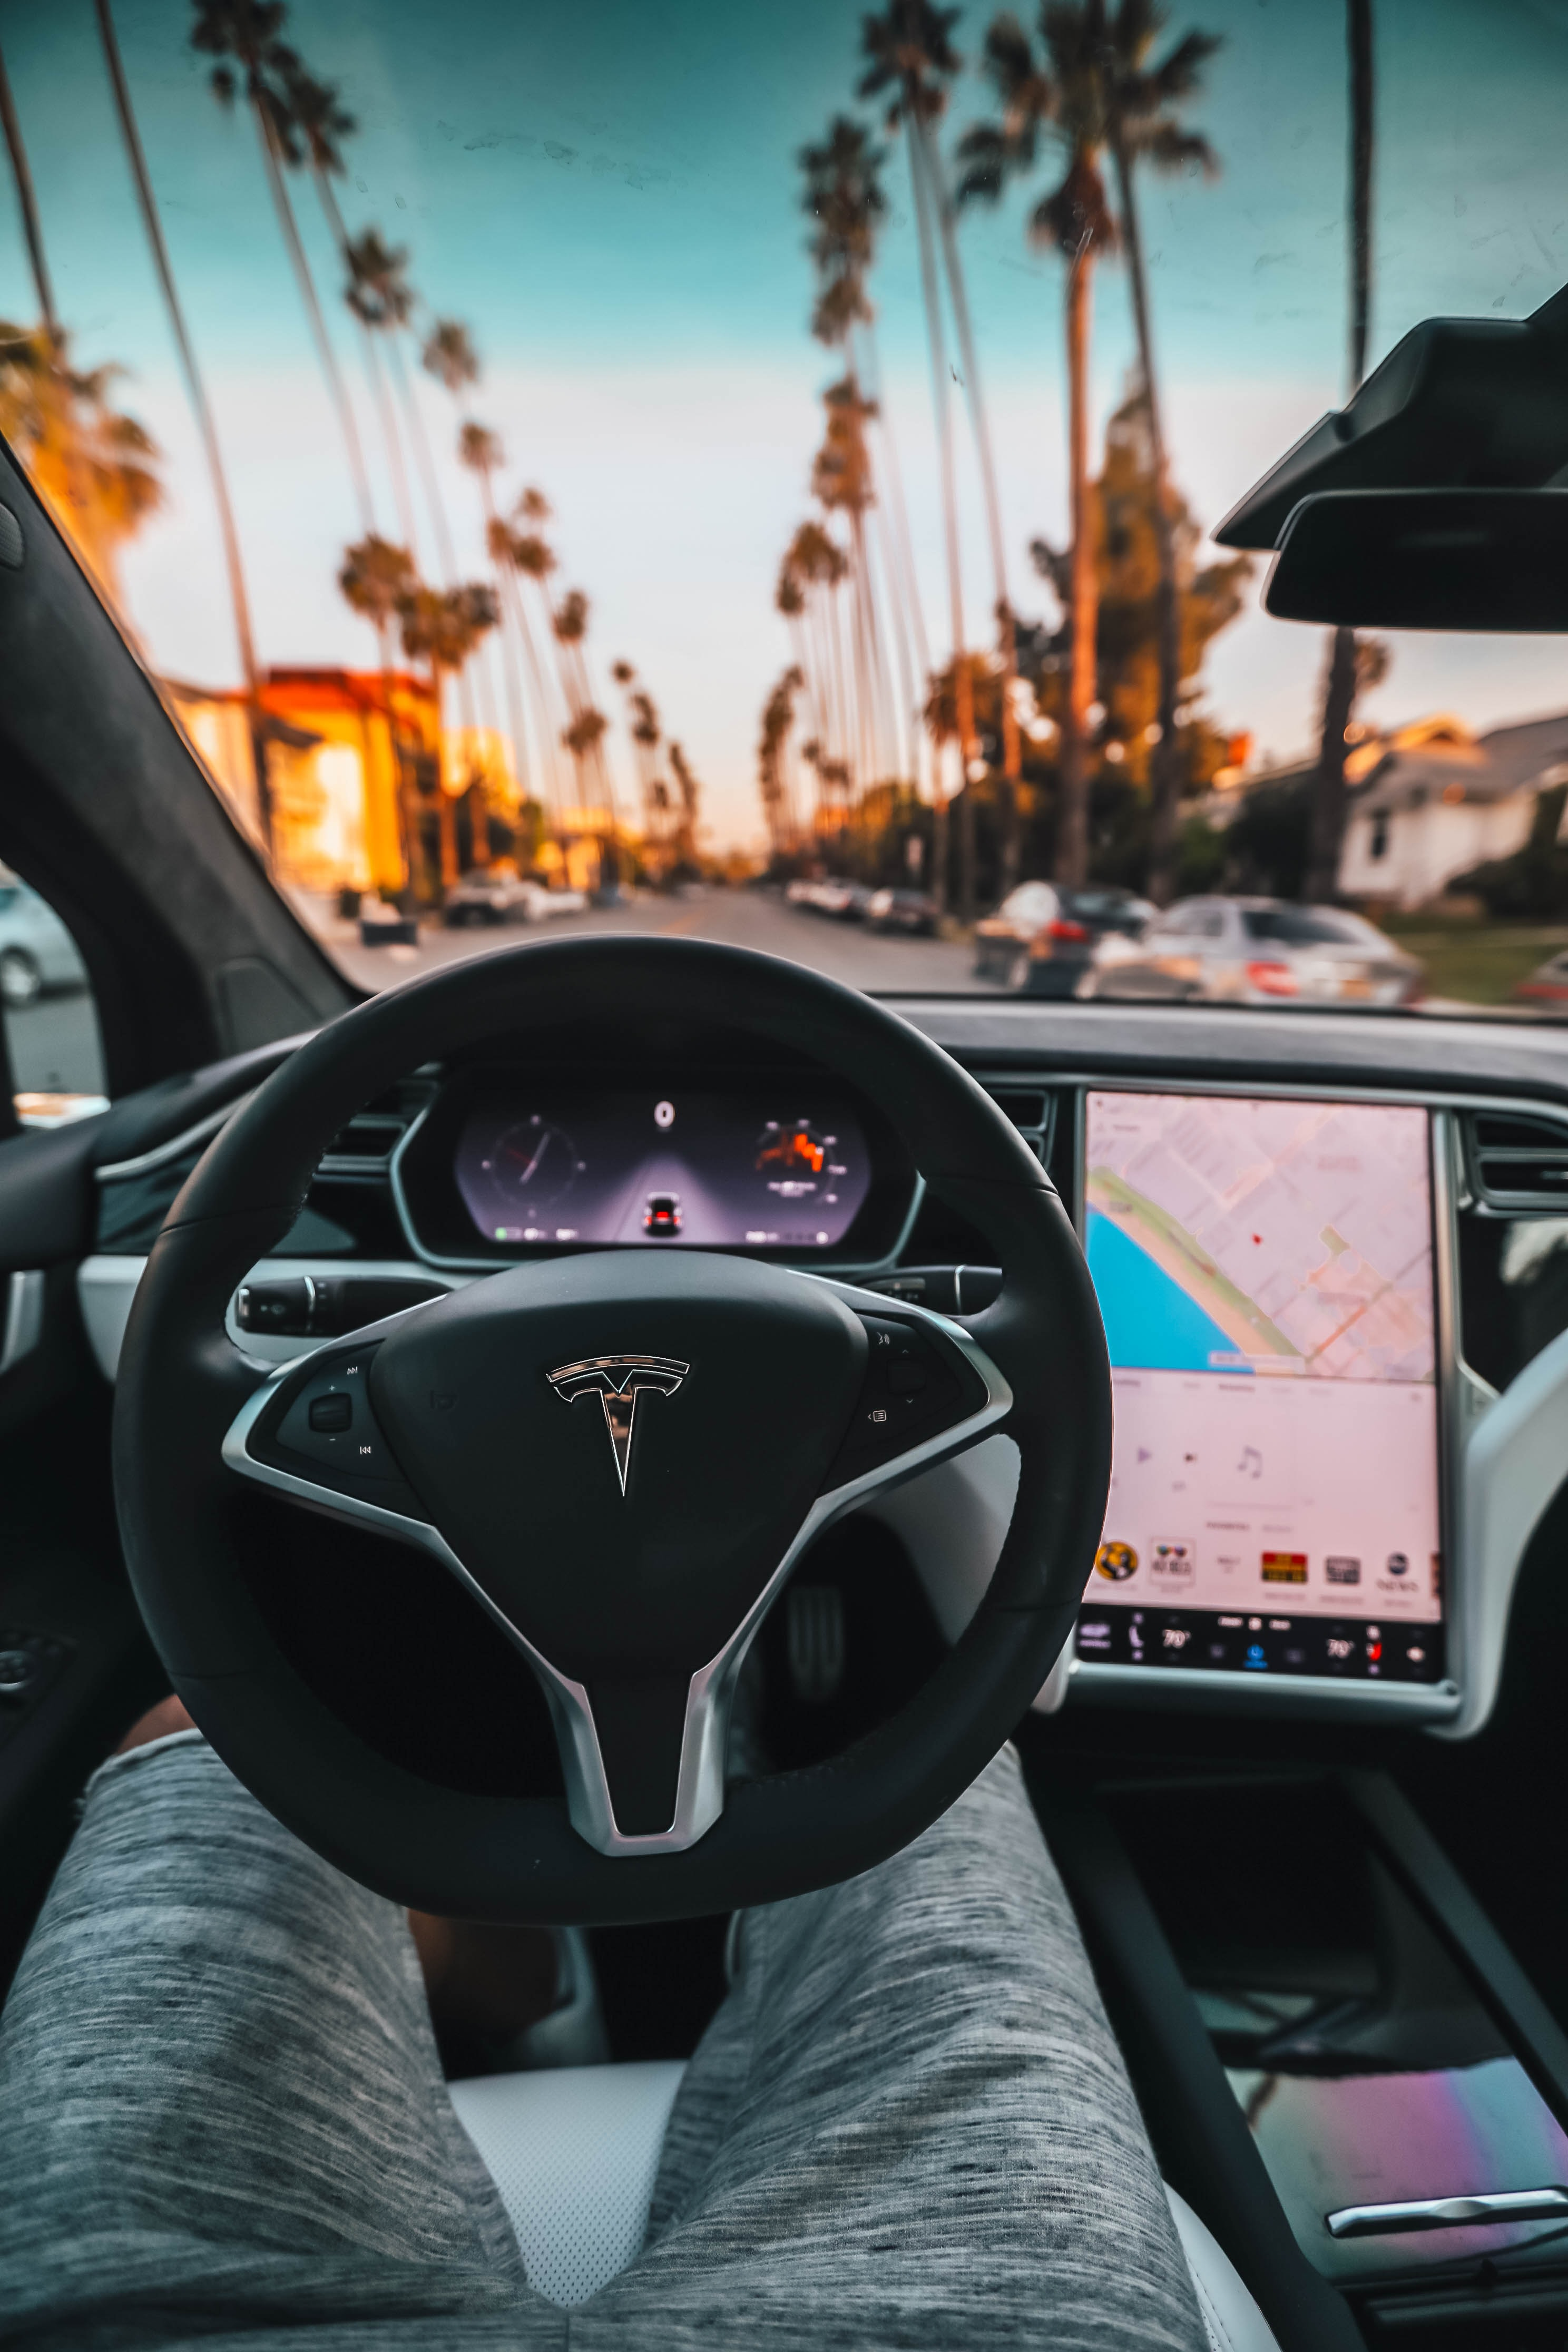 interior view of Tesla car